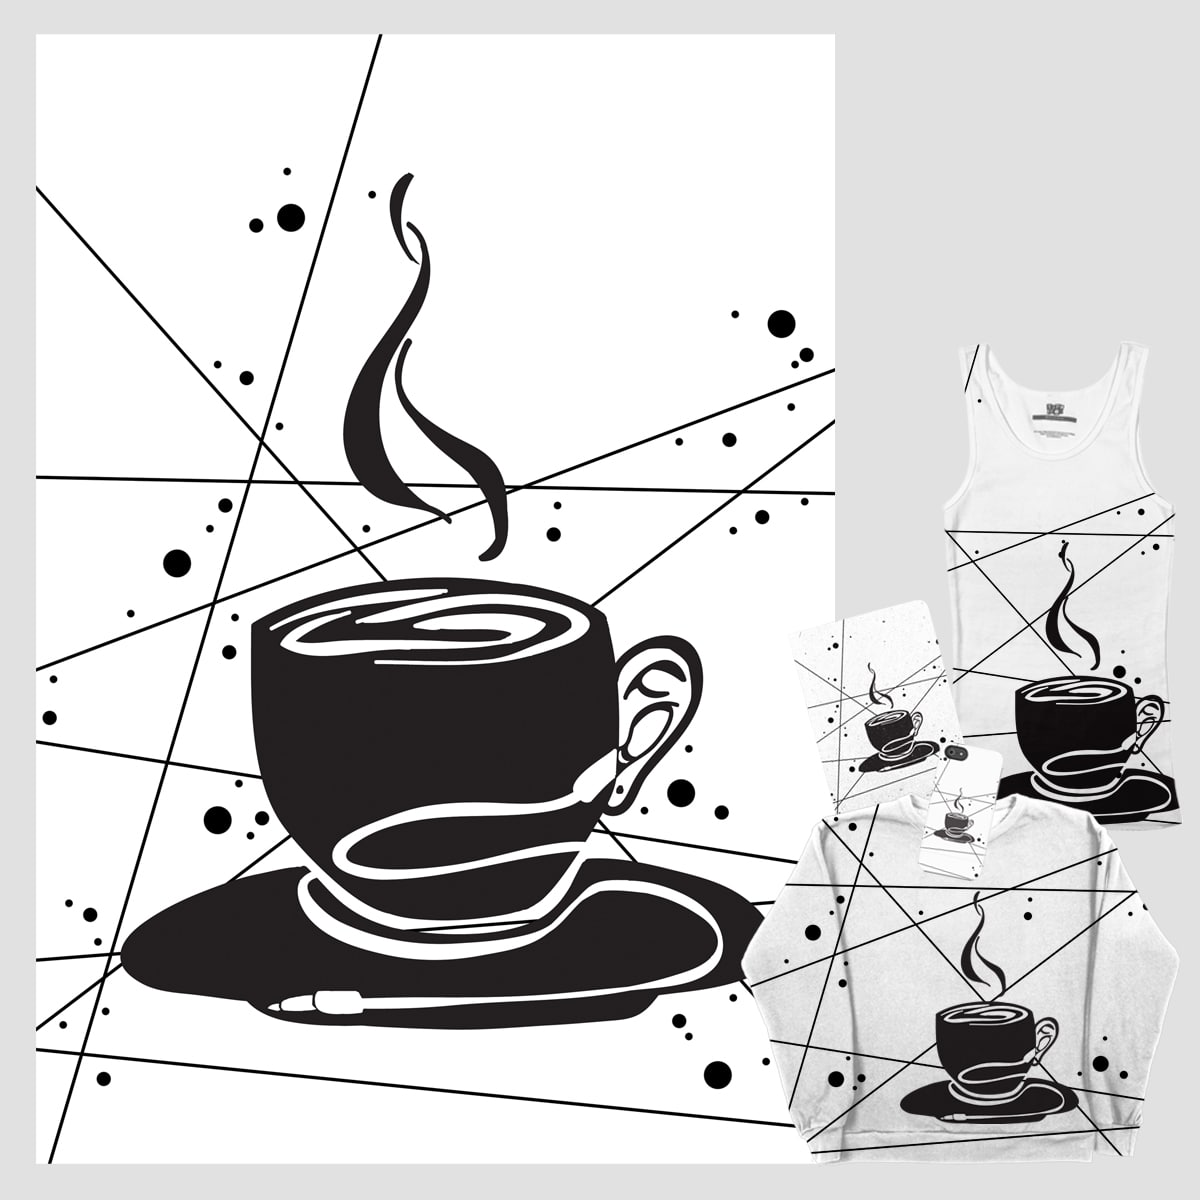 Coffee + Music by emeraldcharms on Threadless